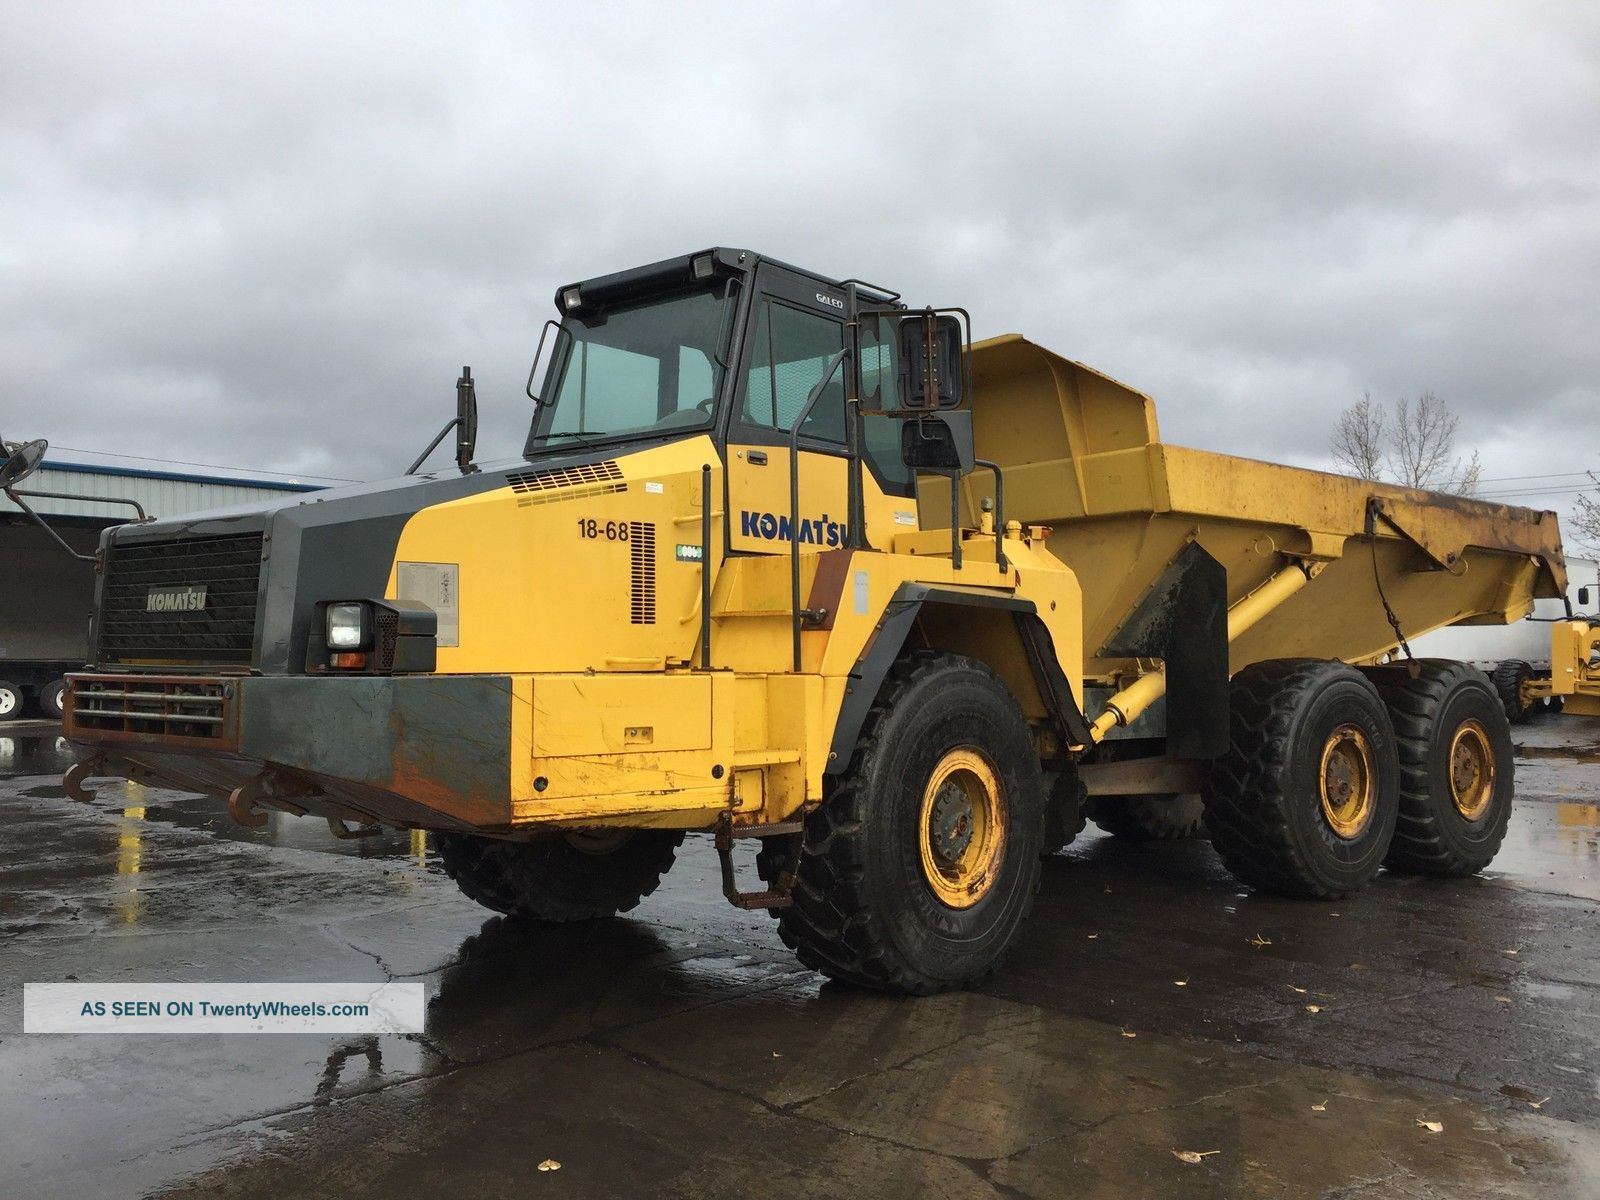 2008 Komatsu Hm350 - 2 6x6 Articulated Dump Truck Articulated Trucks Utility Vehicles photo